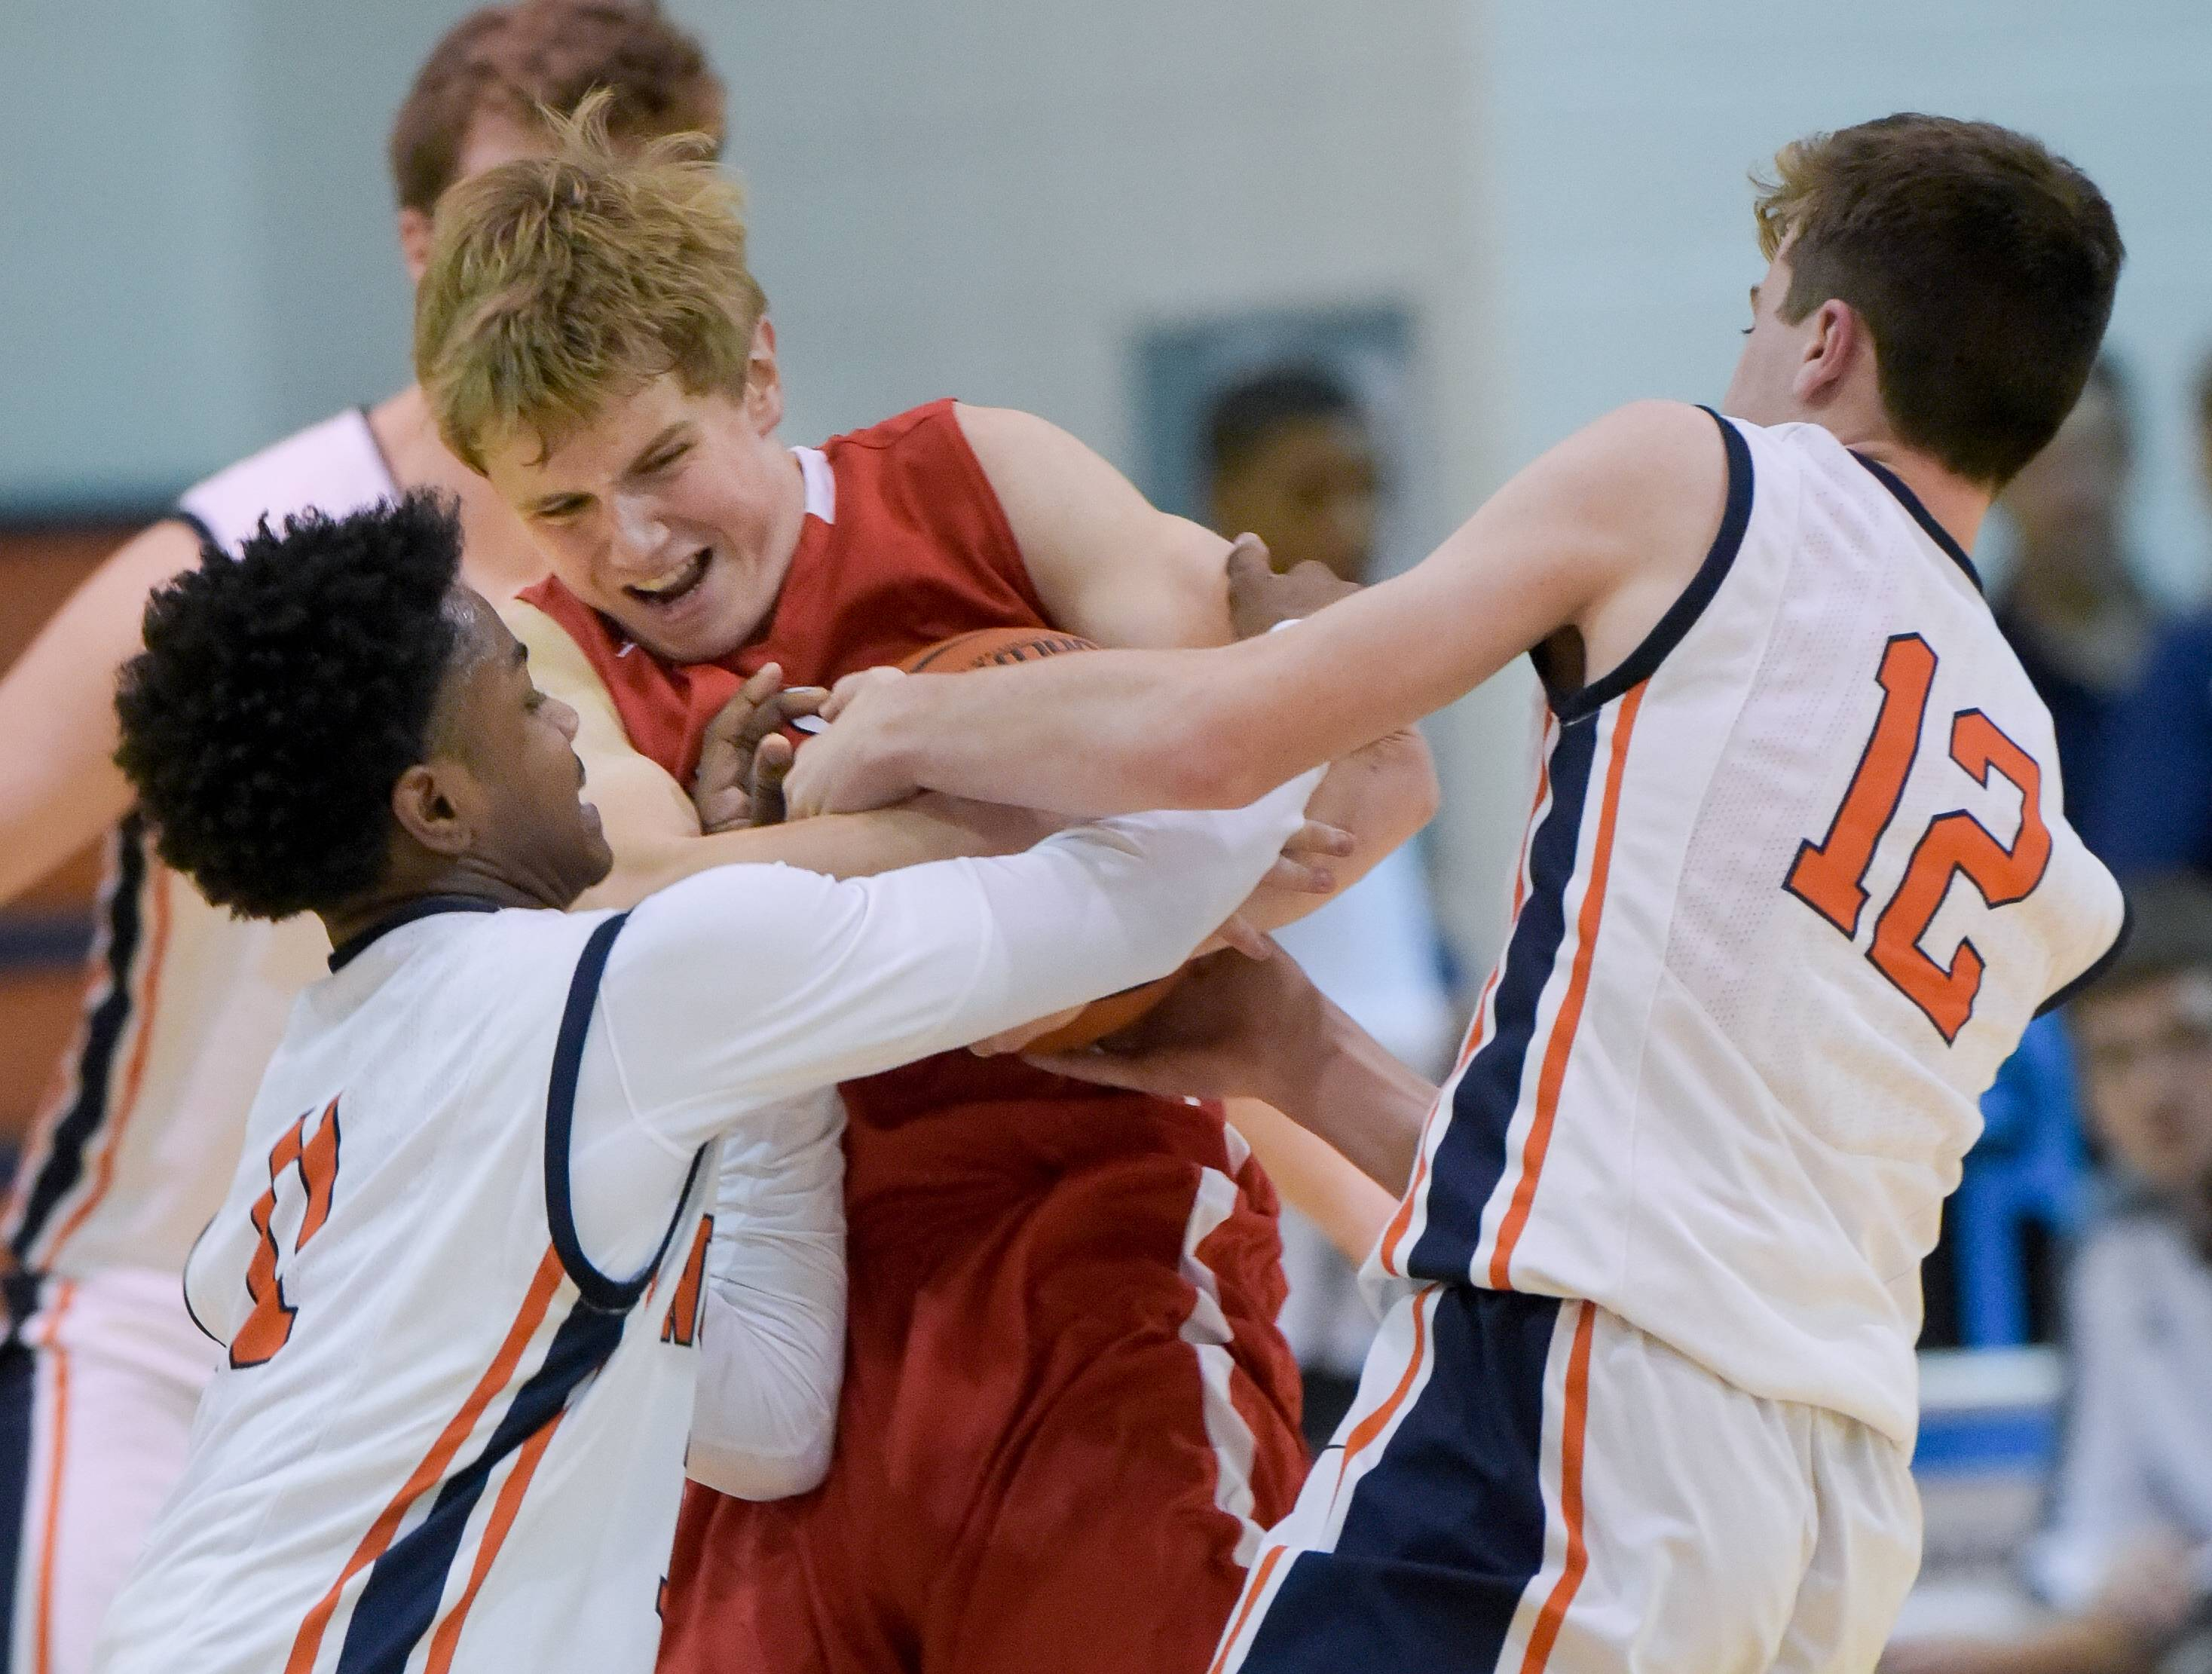 Naperville North's Jared McIntyre (11) and Jack Hill (12) struggle with Hinsdale Central's Trevor Hamilton (13) for control of the ball during boys varsity basketball on November 20, 2017.